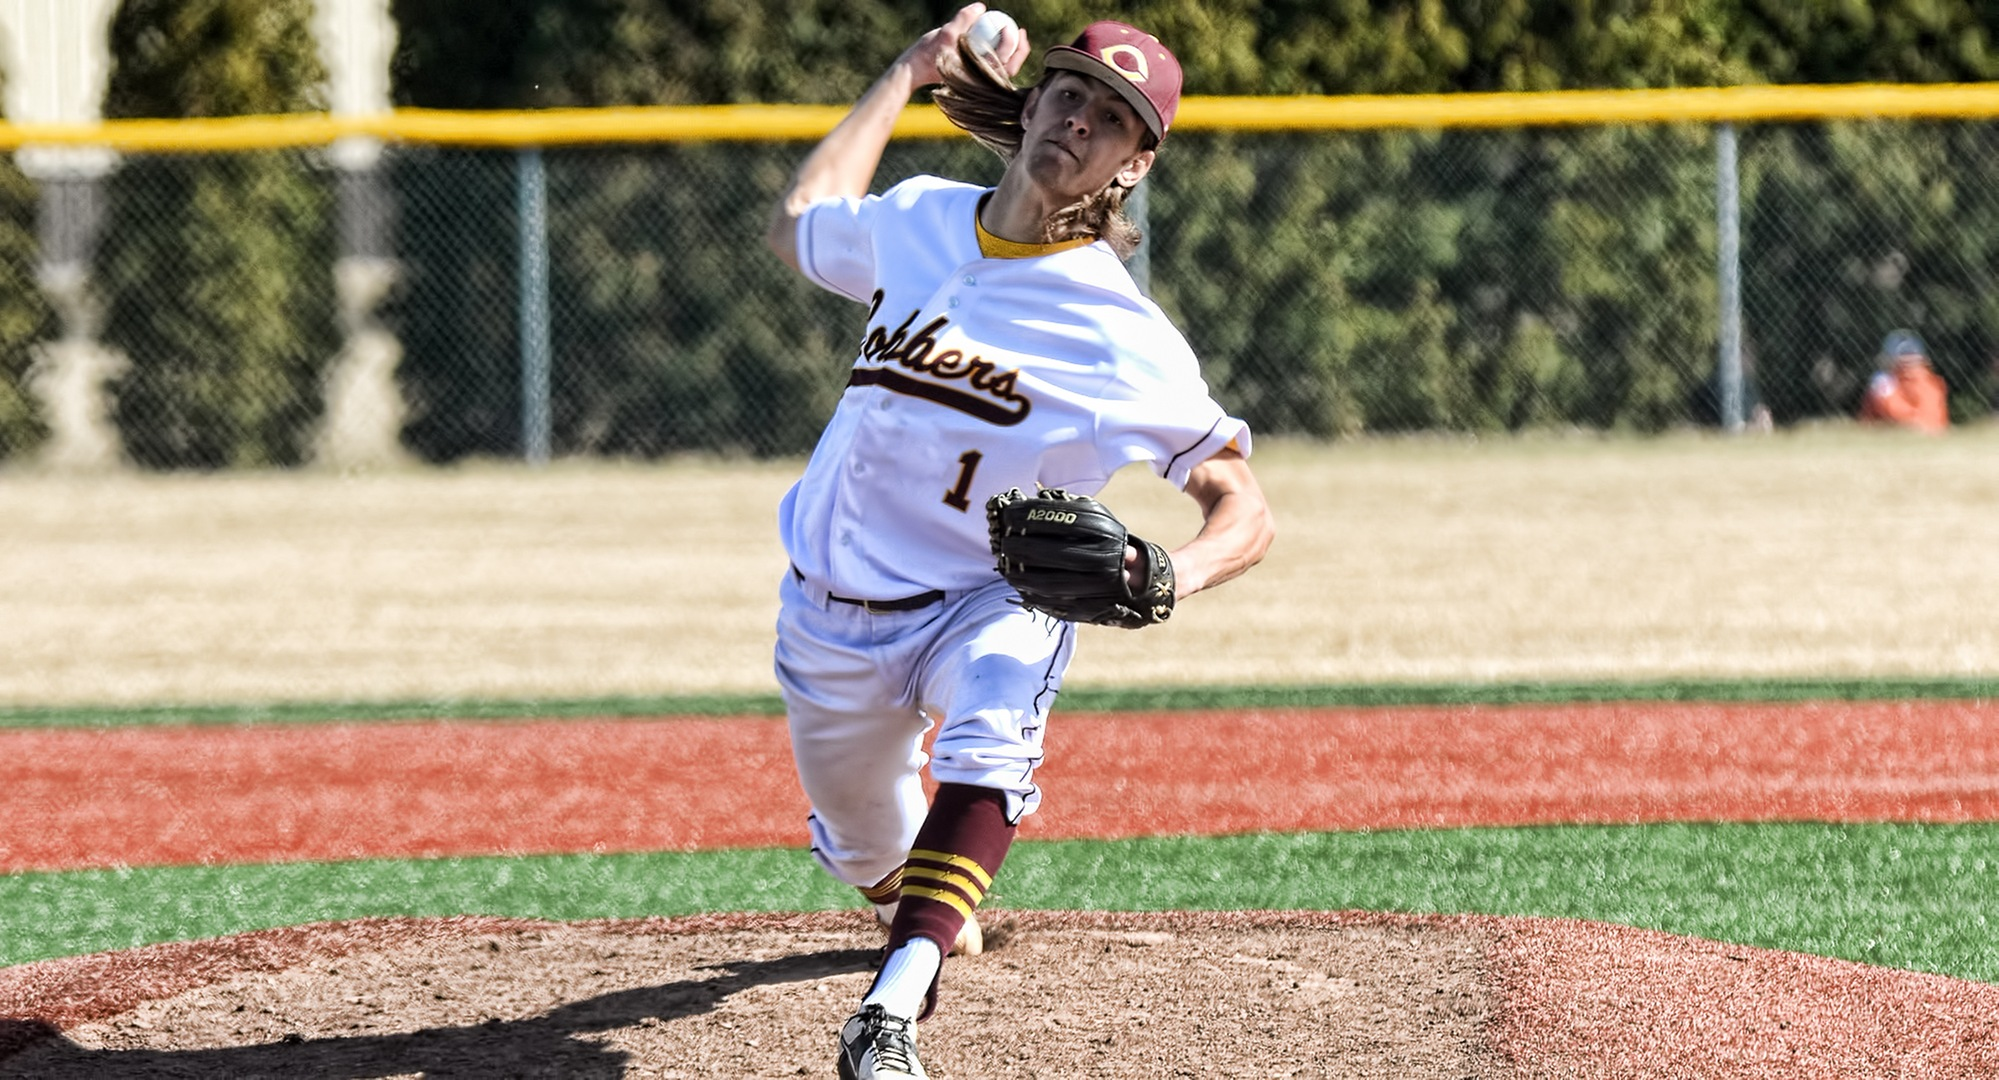 Junior pitcher Zack Nelson allowed just three hits and helped the Cobbers post a 3-2 win over DII Concordia-St. Paul in the first game of the doubleheader sweep.